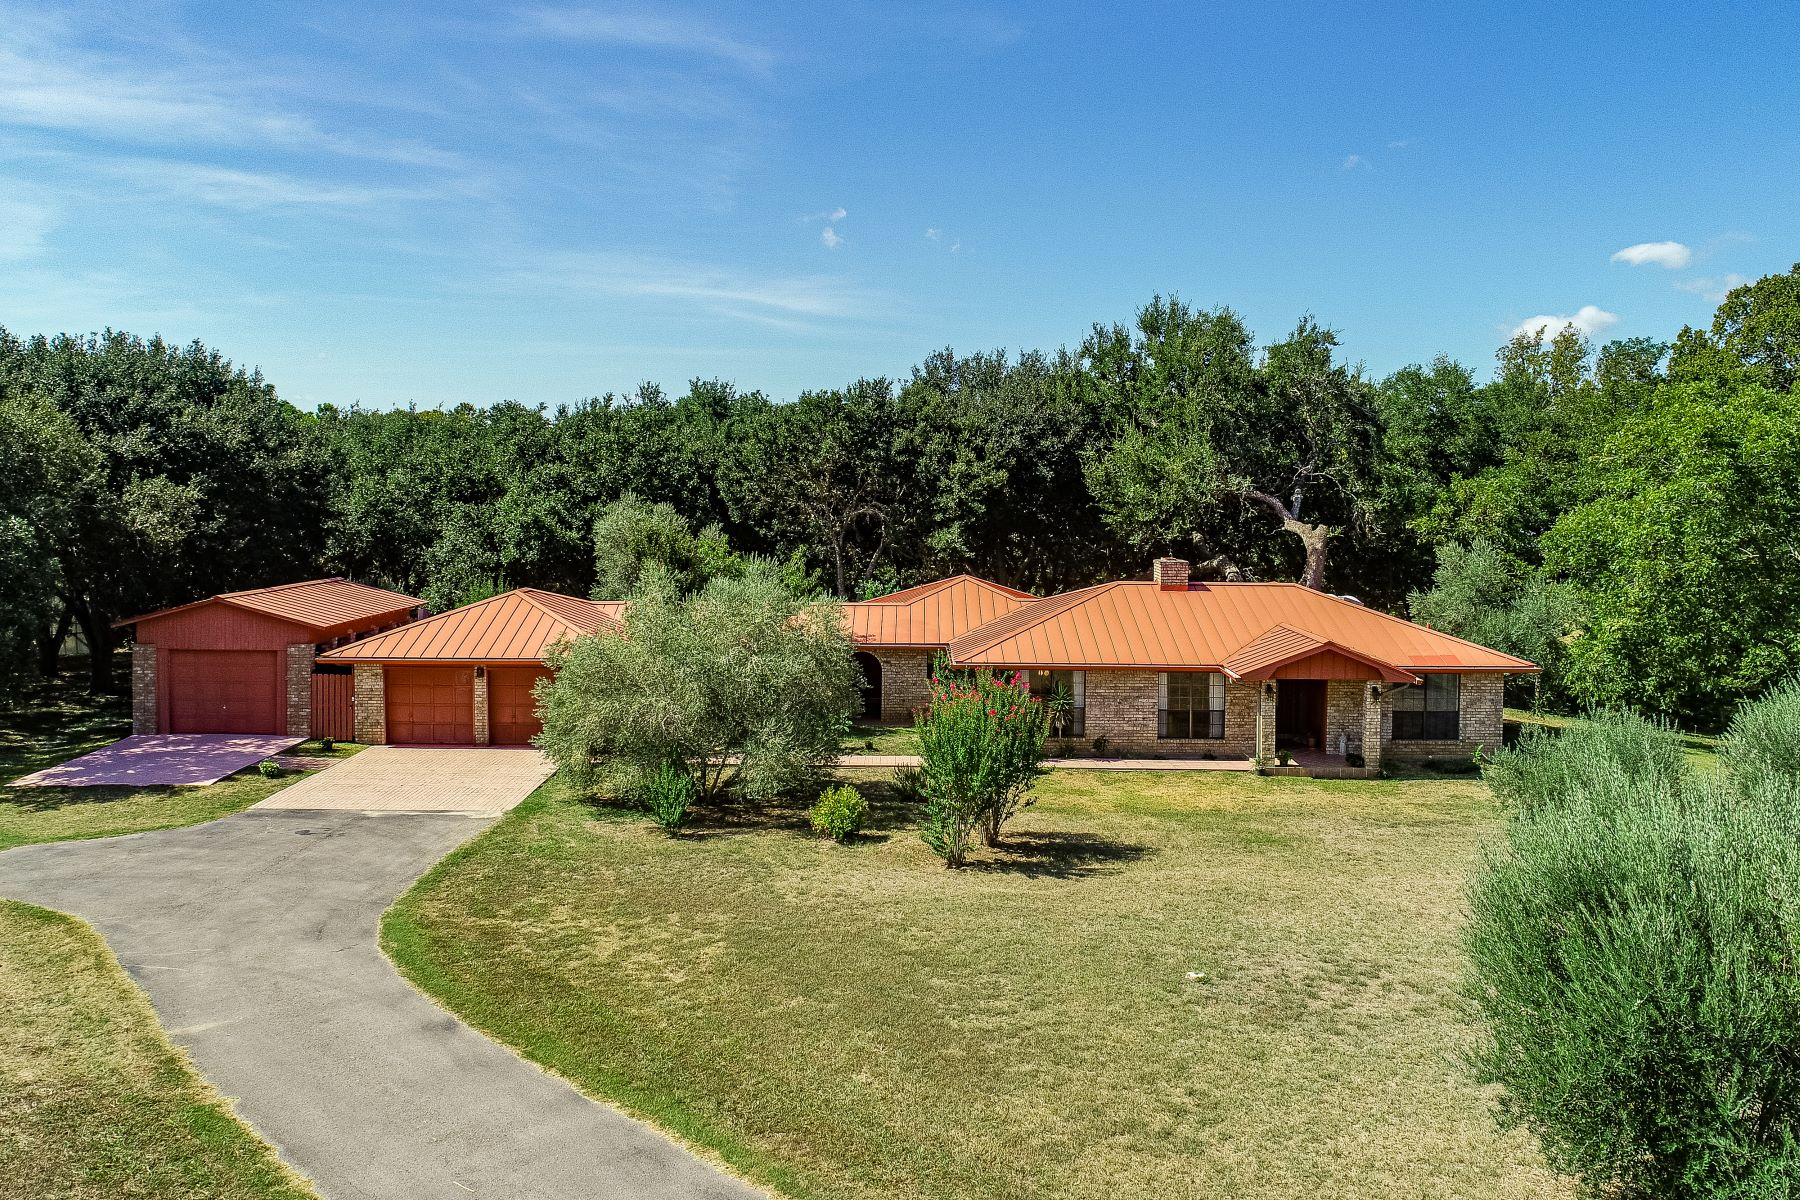 Single Family Homes for Sale at 1105 Sarah DeWitt Drive, Gonzales, TX 78629 1105 Sarah DeWitt Drive Gonzales, Texas 78629 United States